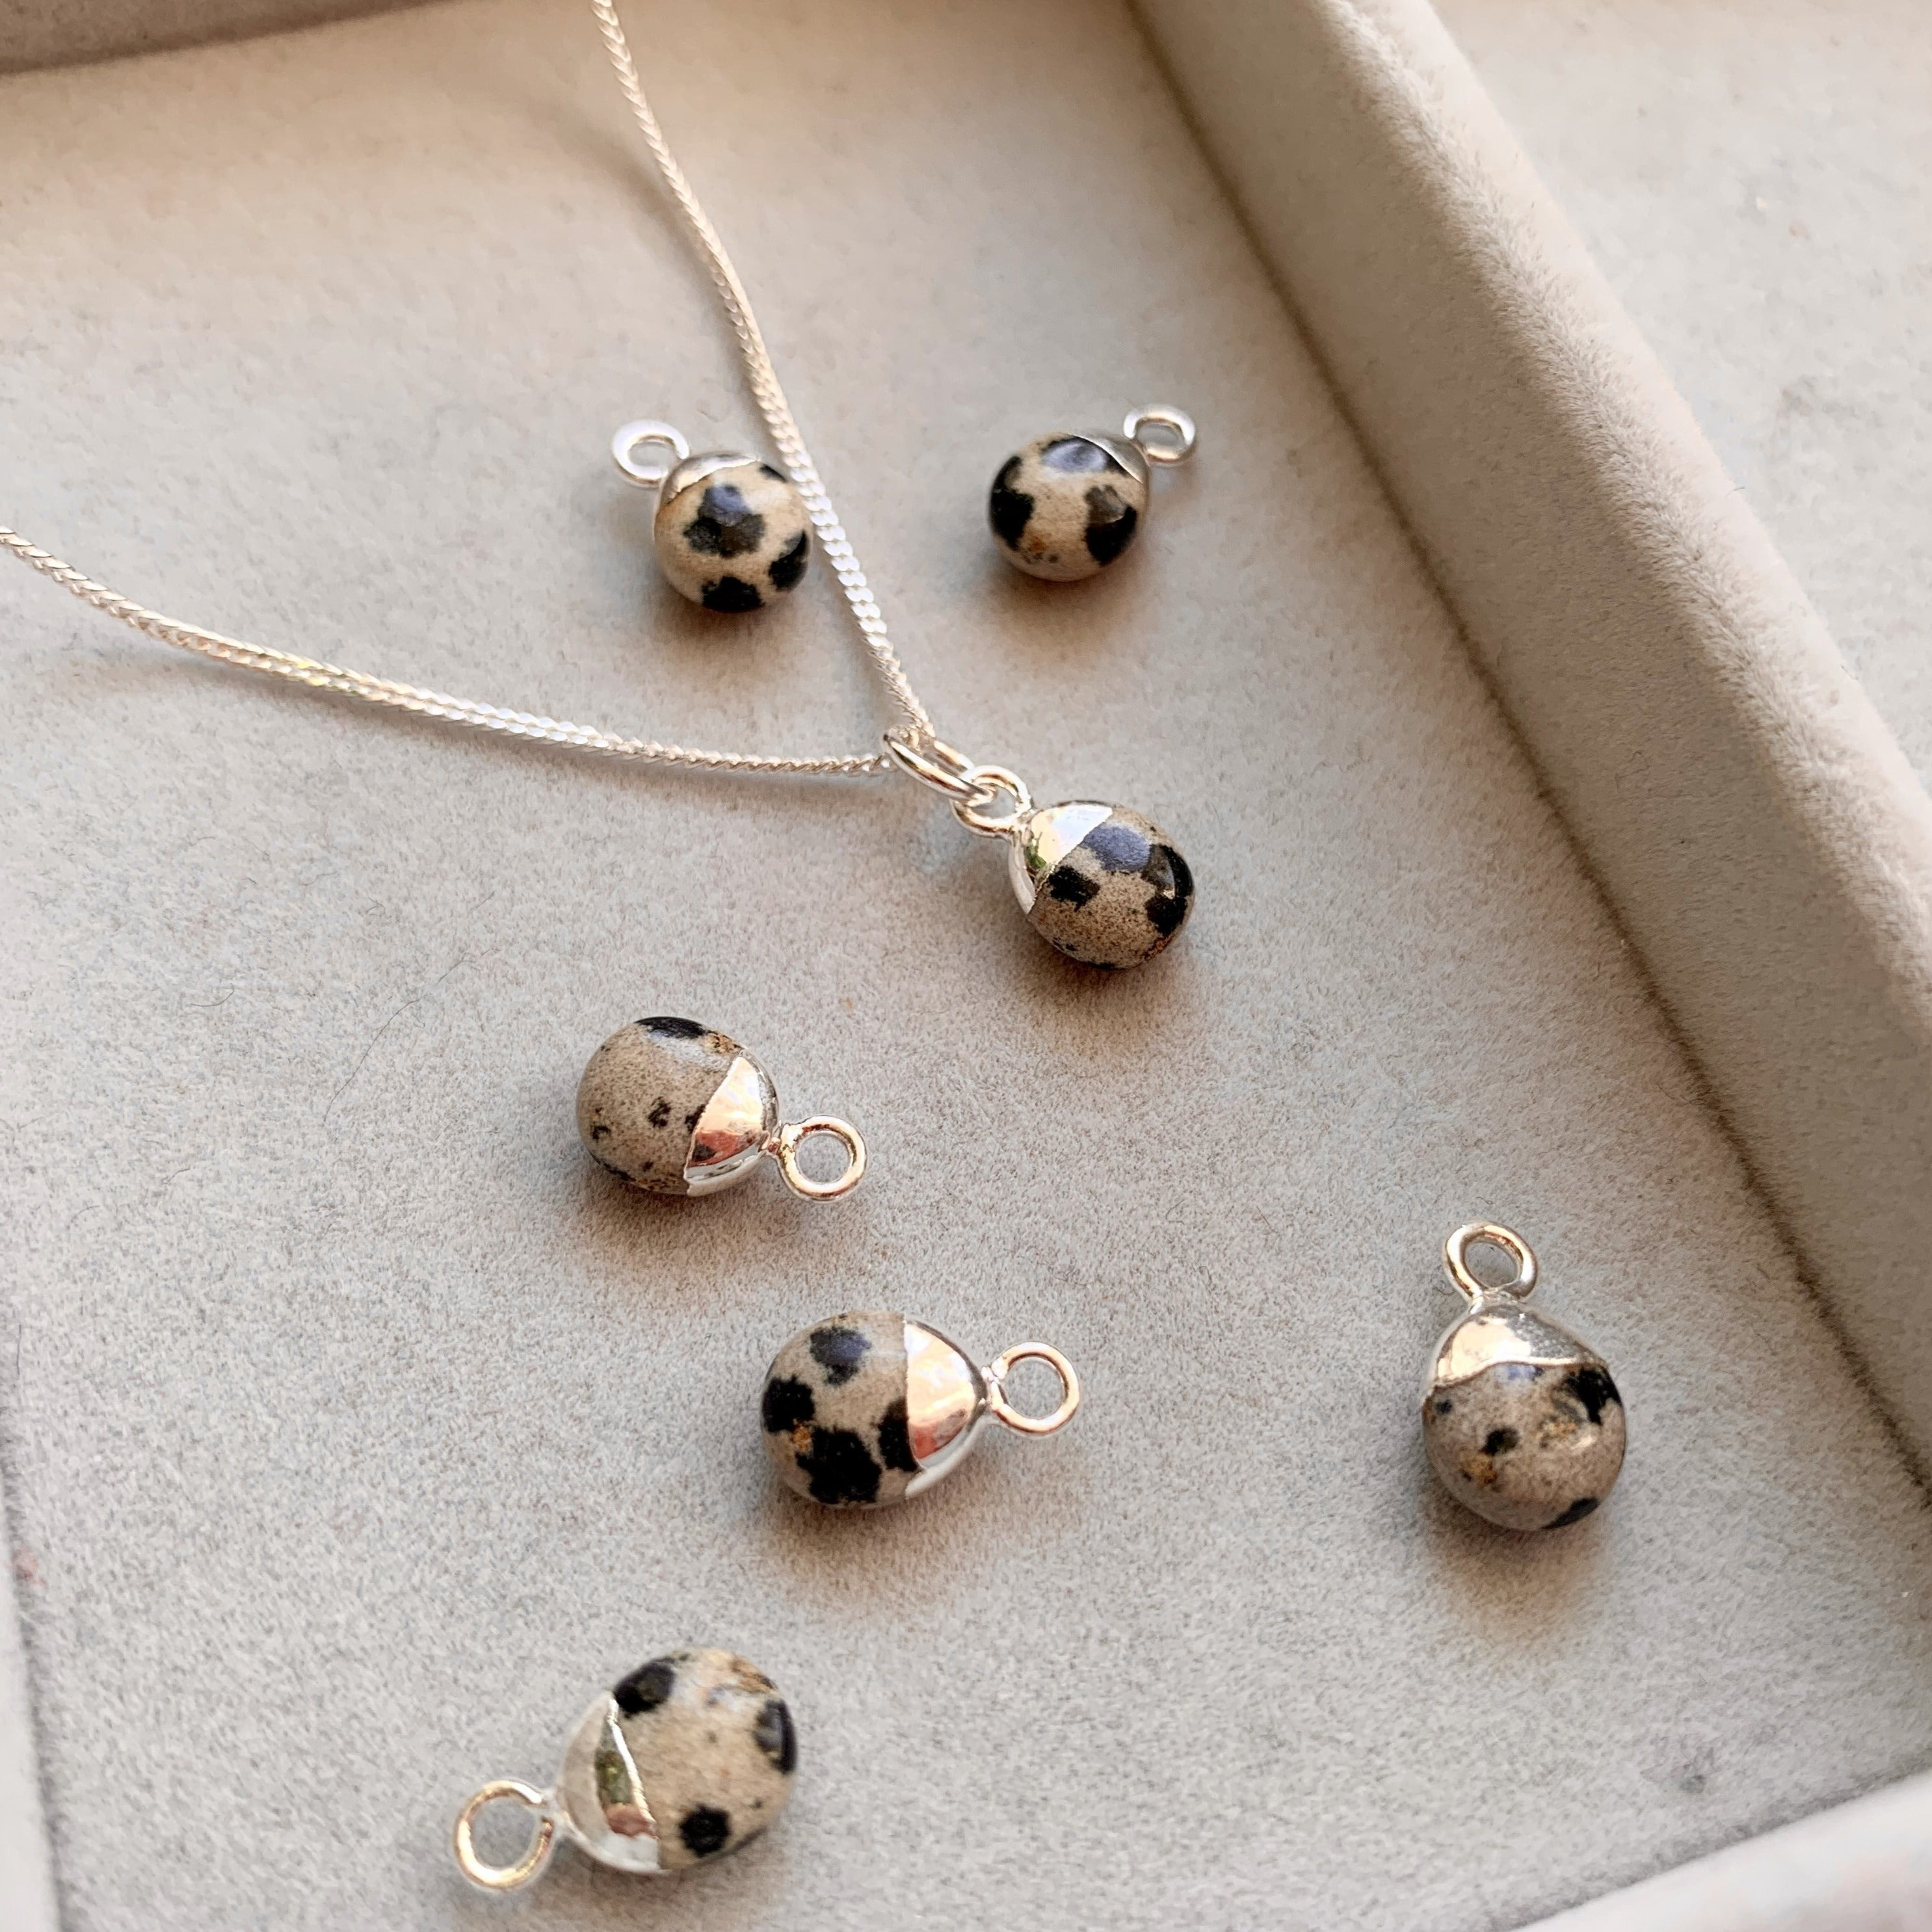 Tiny Tumbled Gemstone Necklace - Silver - Dalmatian - Decadorn